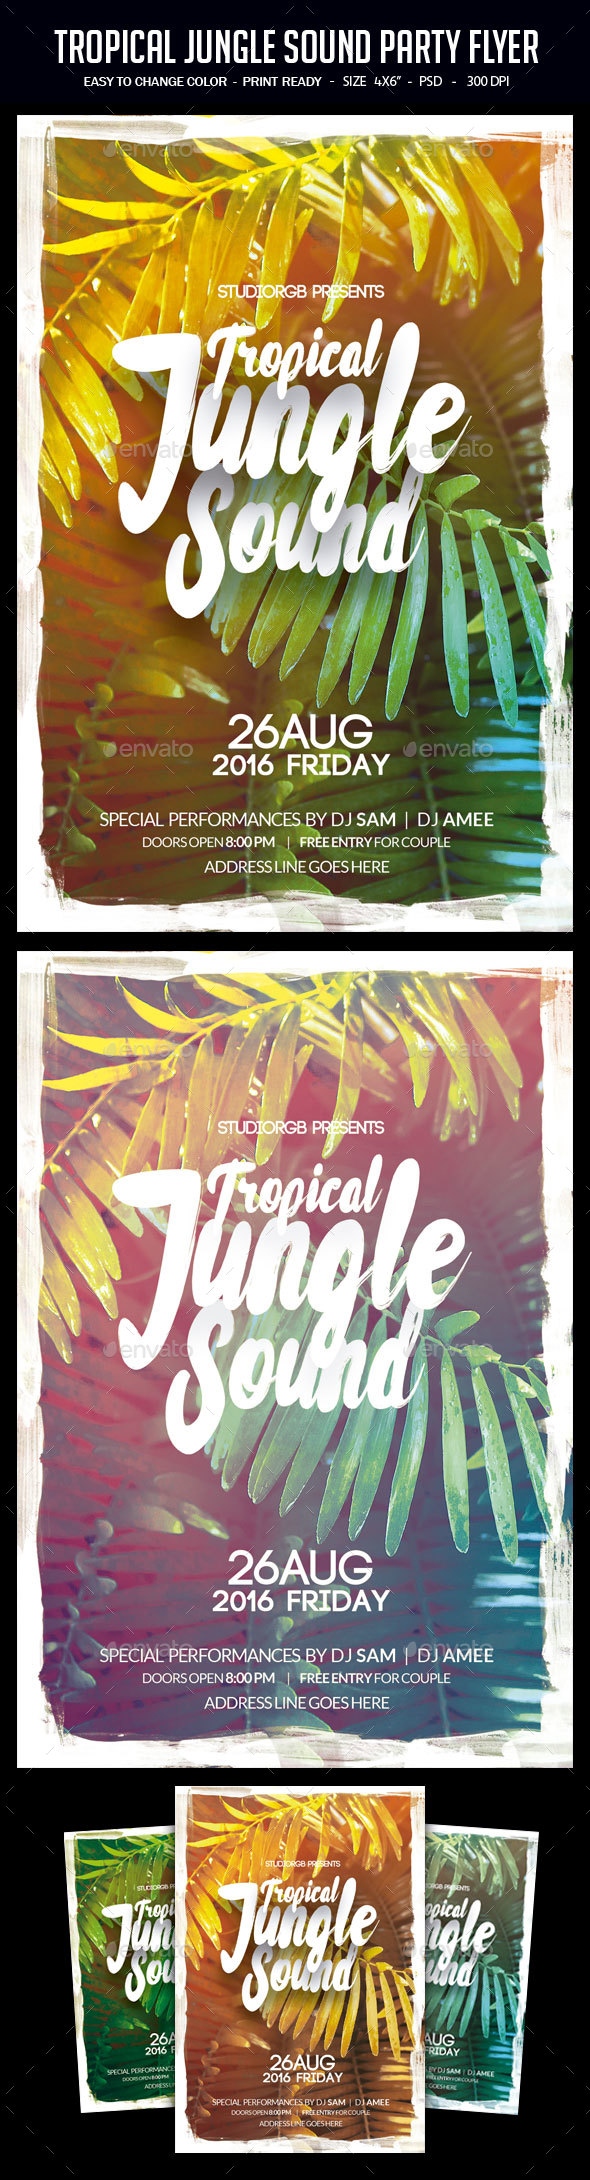 Jungle Sound Party Flyer - Clubs & Parties Events